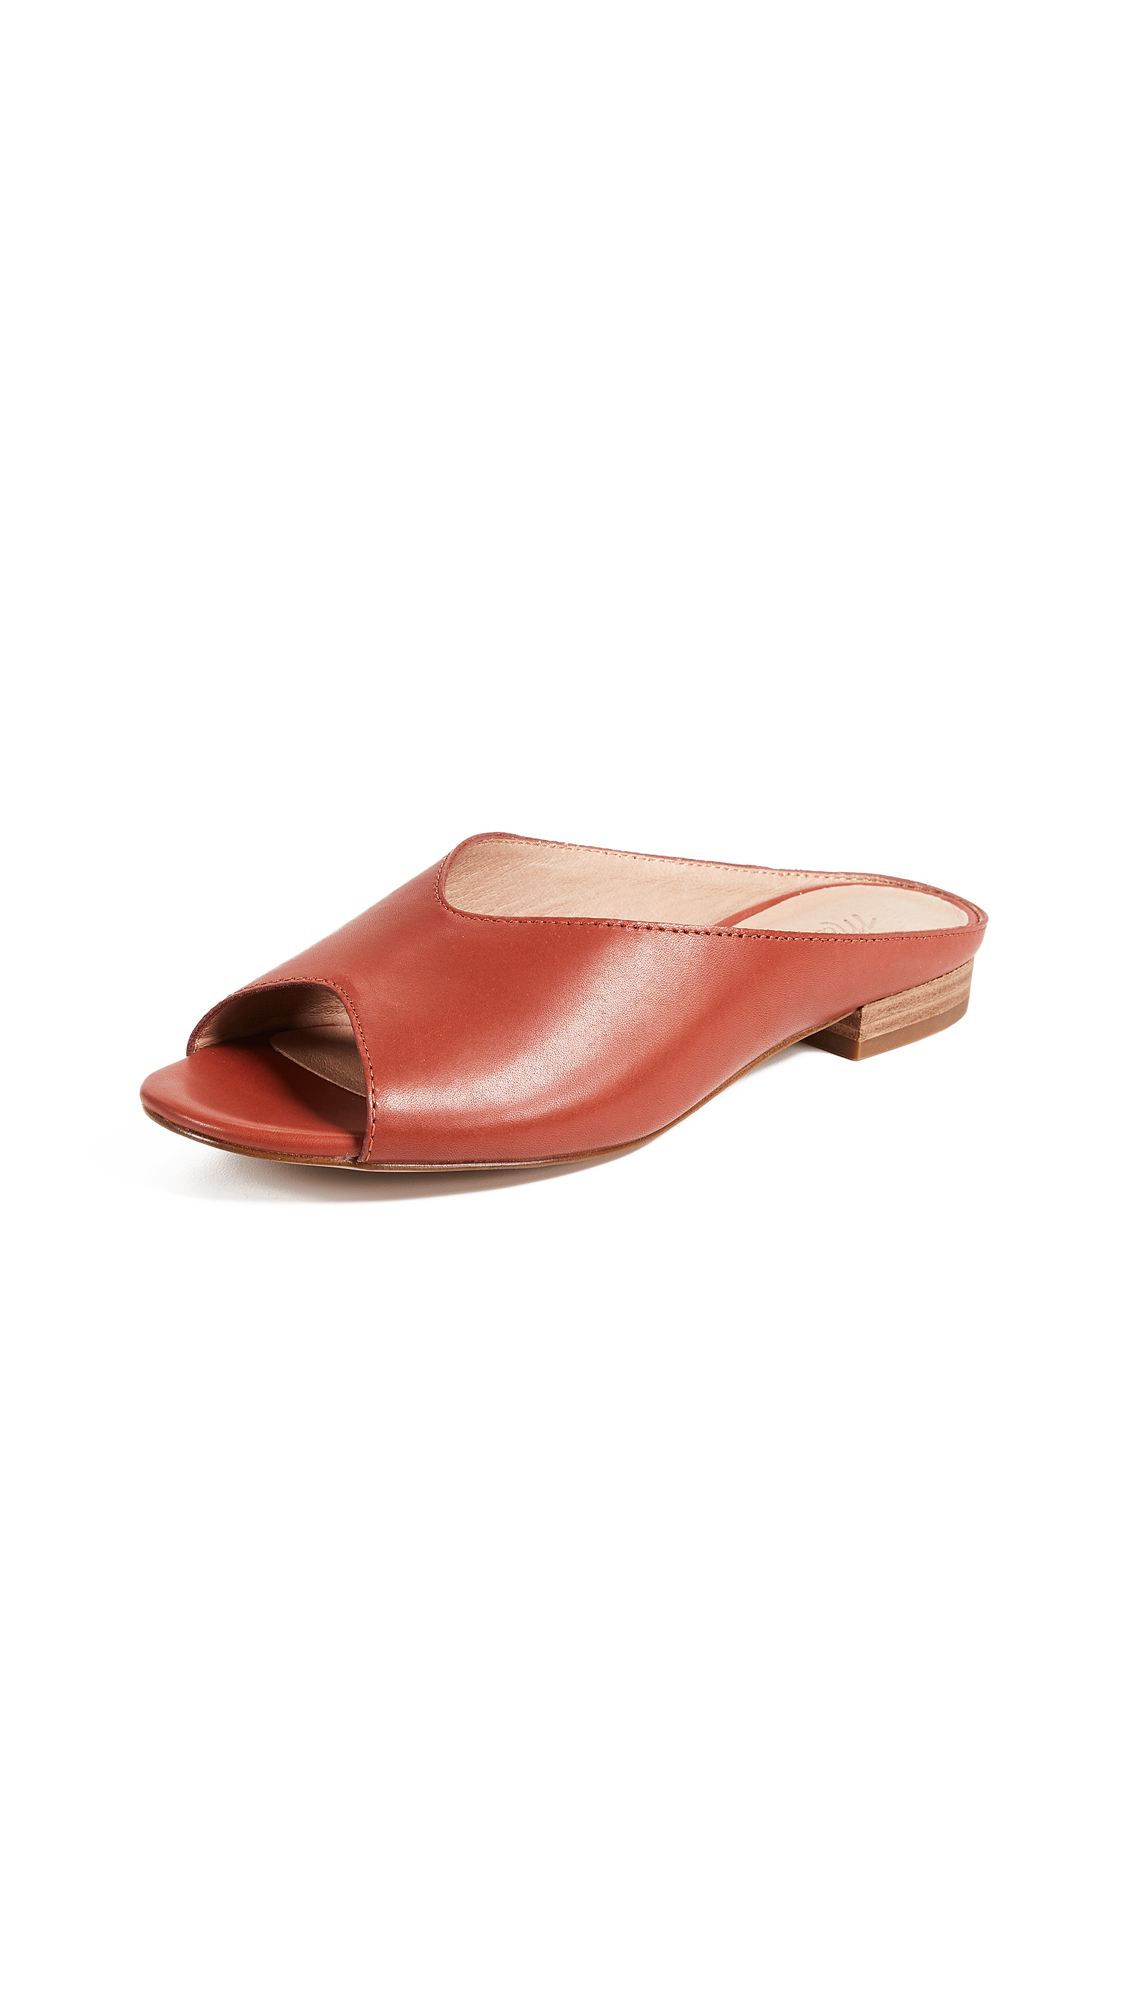 Madewell The Tavi Slides - Cinnabar